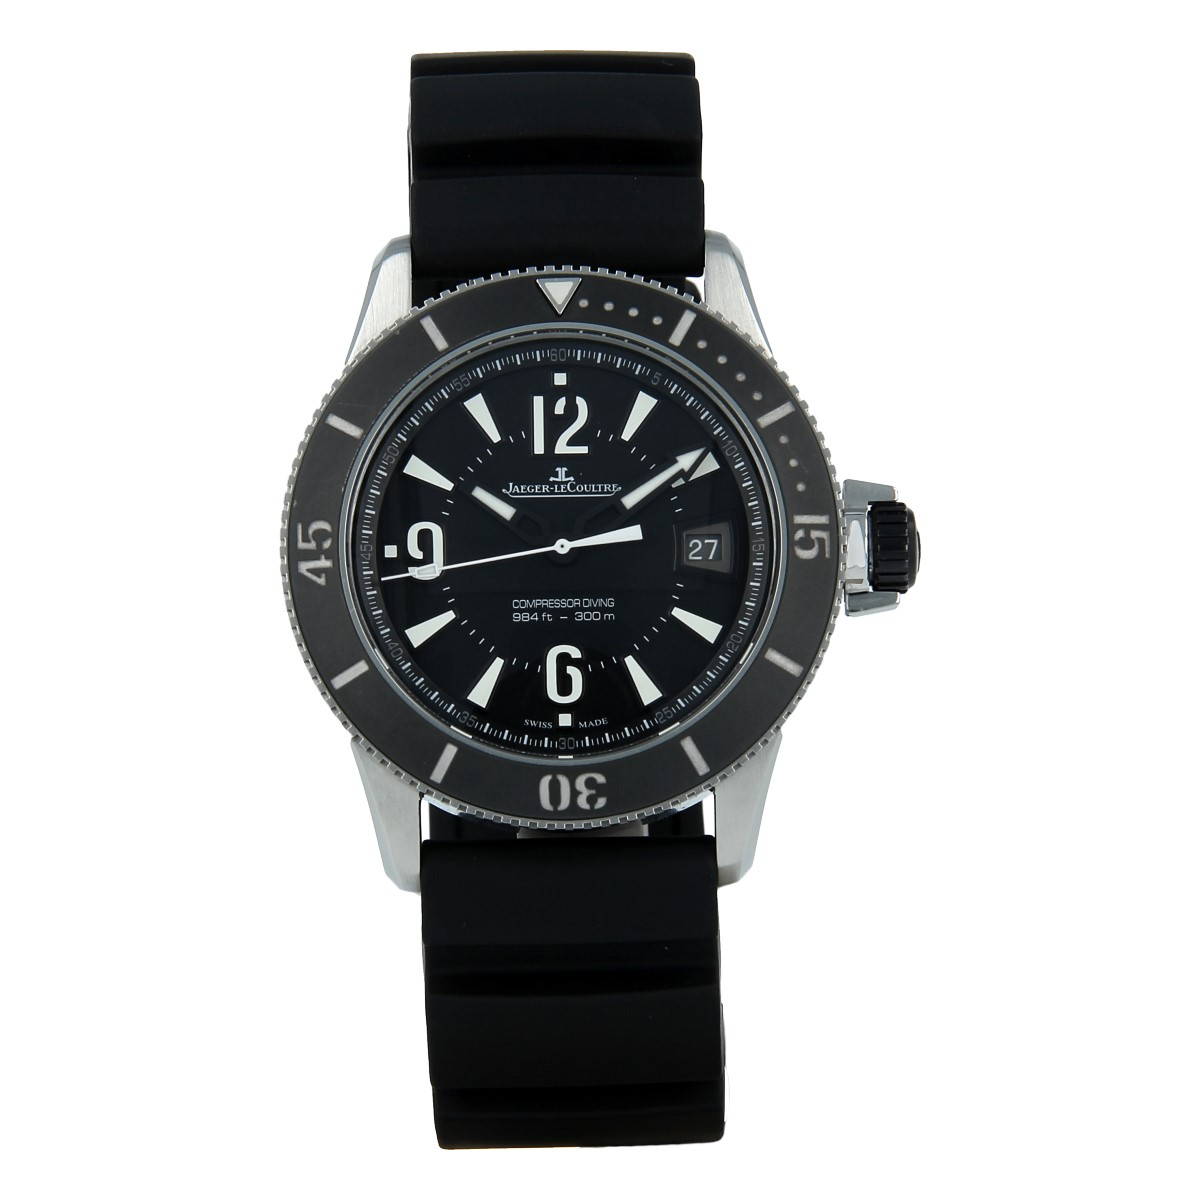 Jaeger-LeCoultre Master Compressor Diving US Navy SEALs *Limited Edition* | Buy pre-owned Jaeger-LeCoultre watch